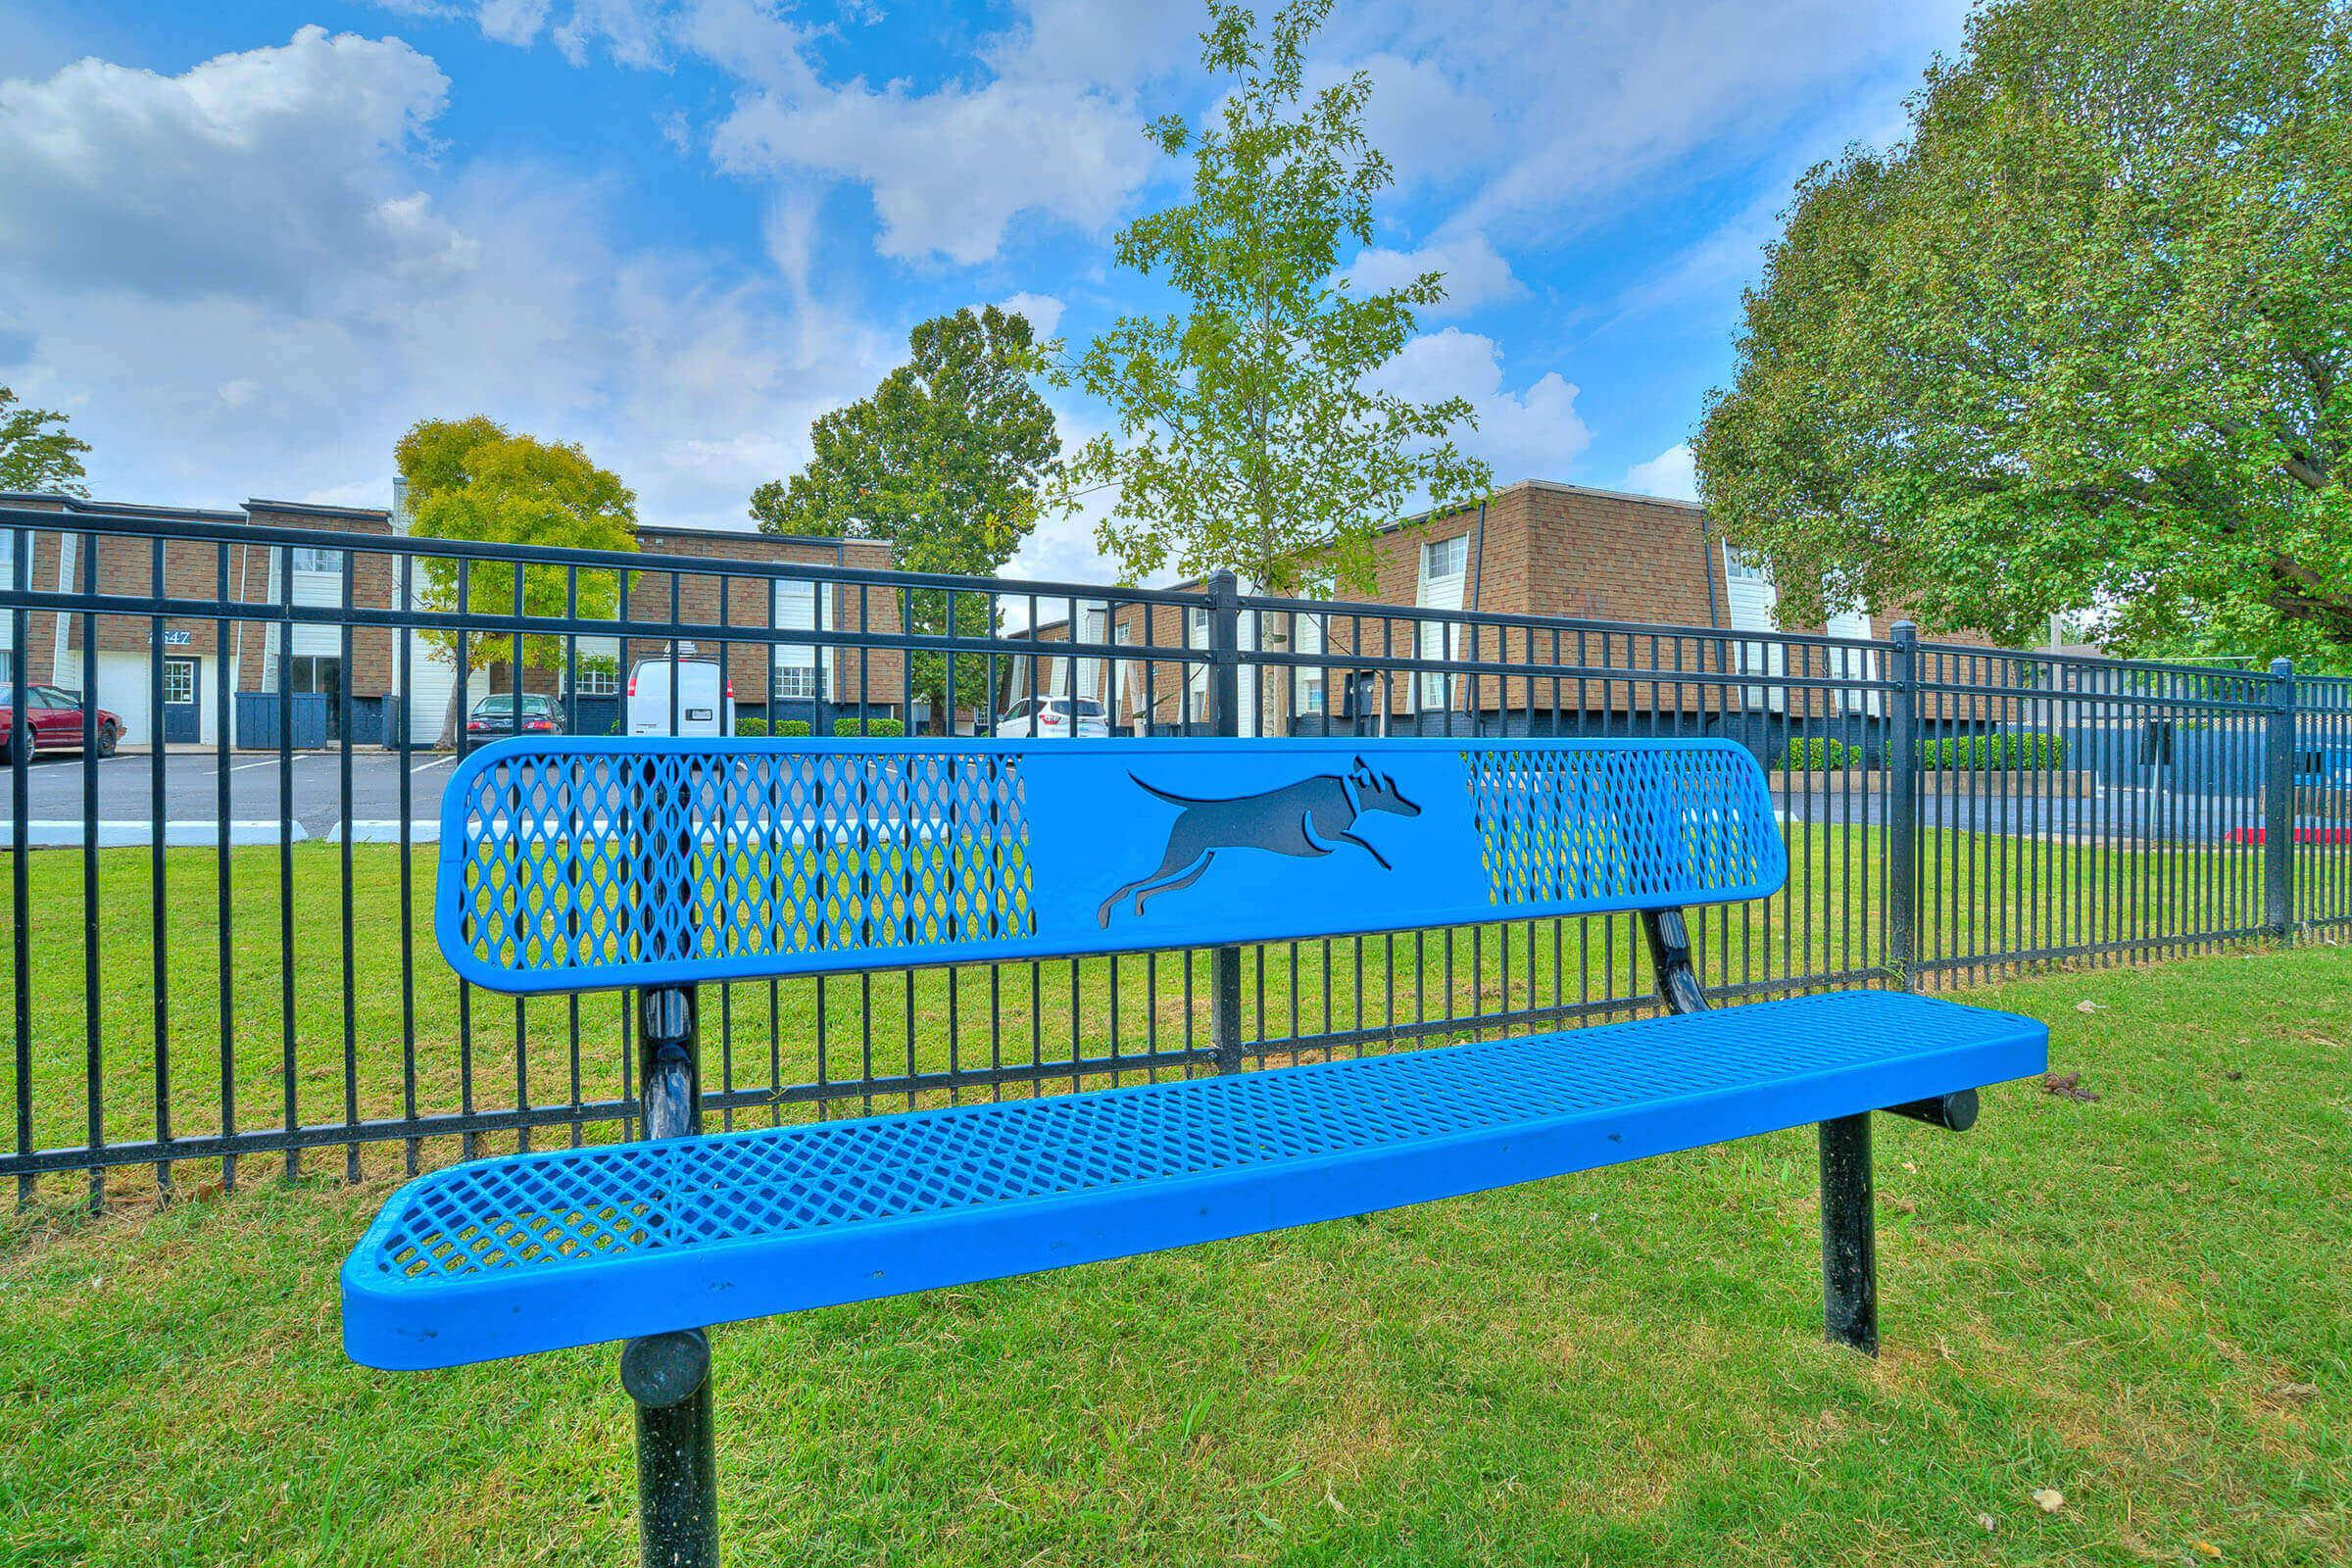 a blue bench in front of a fence